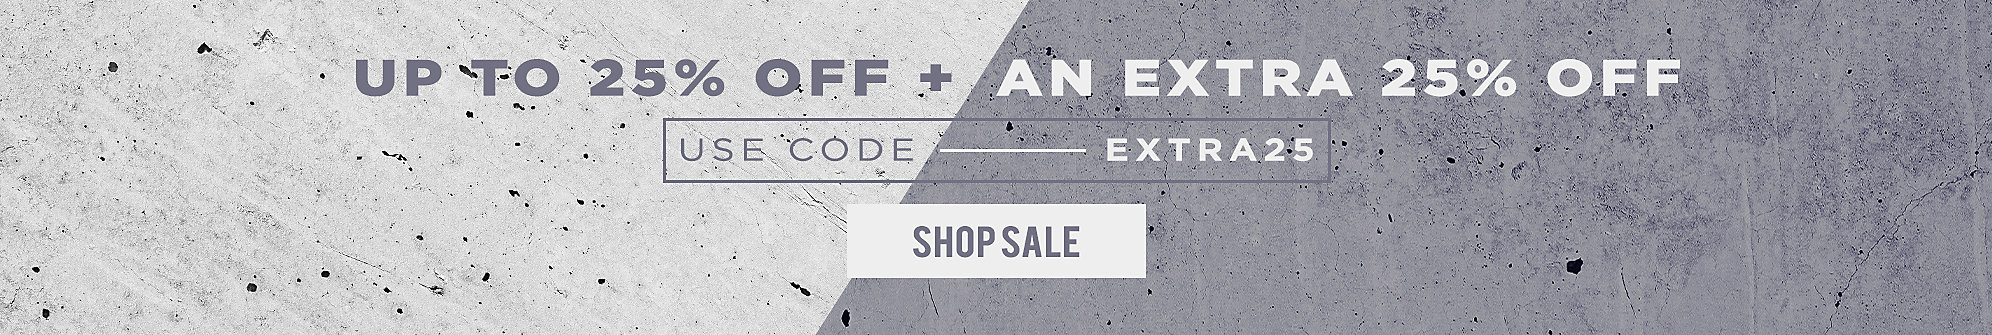 Up to 25% Off + An Extra 25% Off with code: EXTRA25